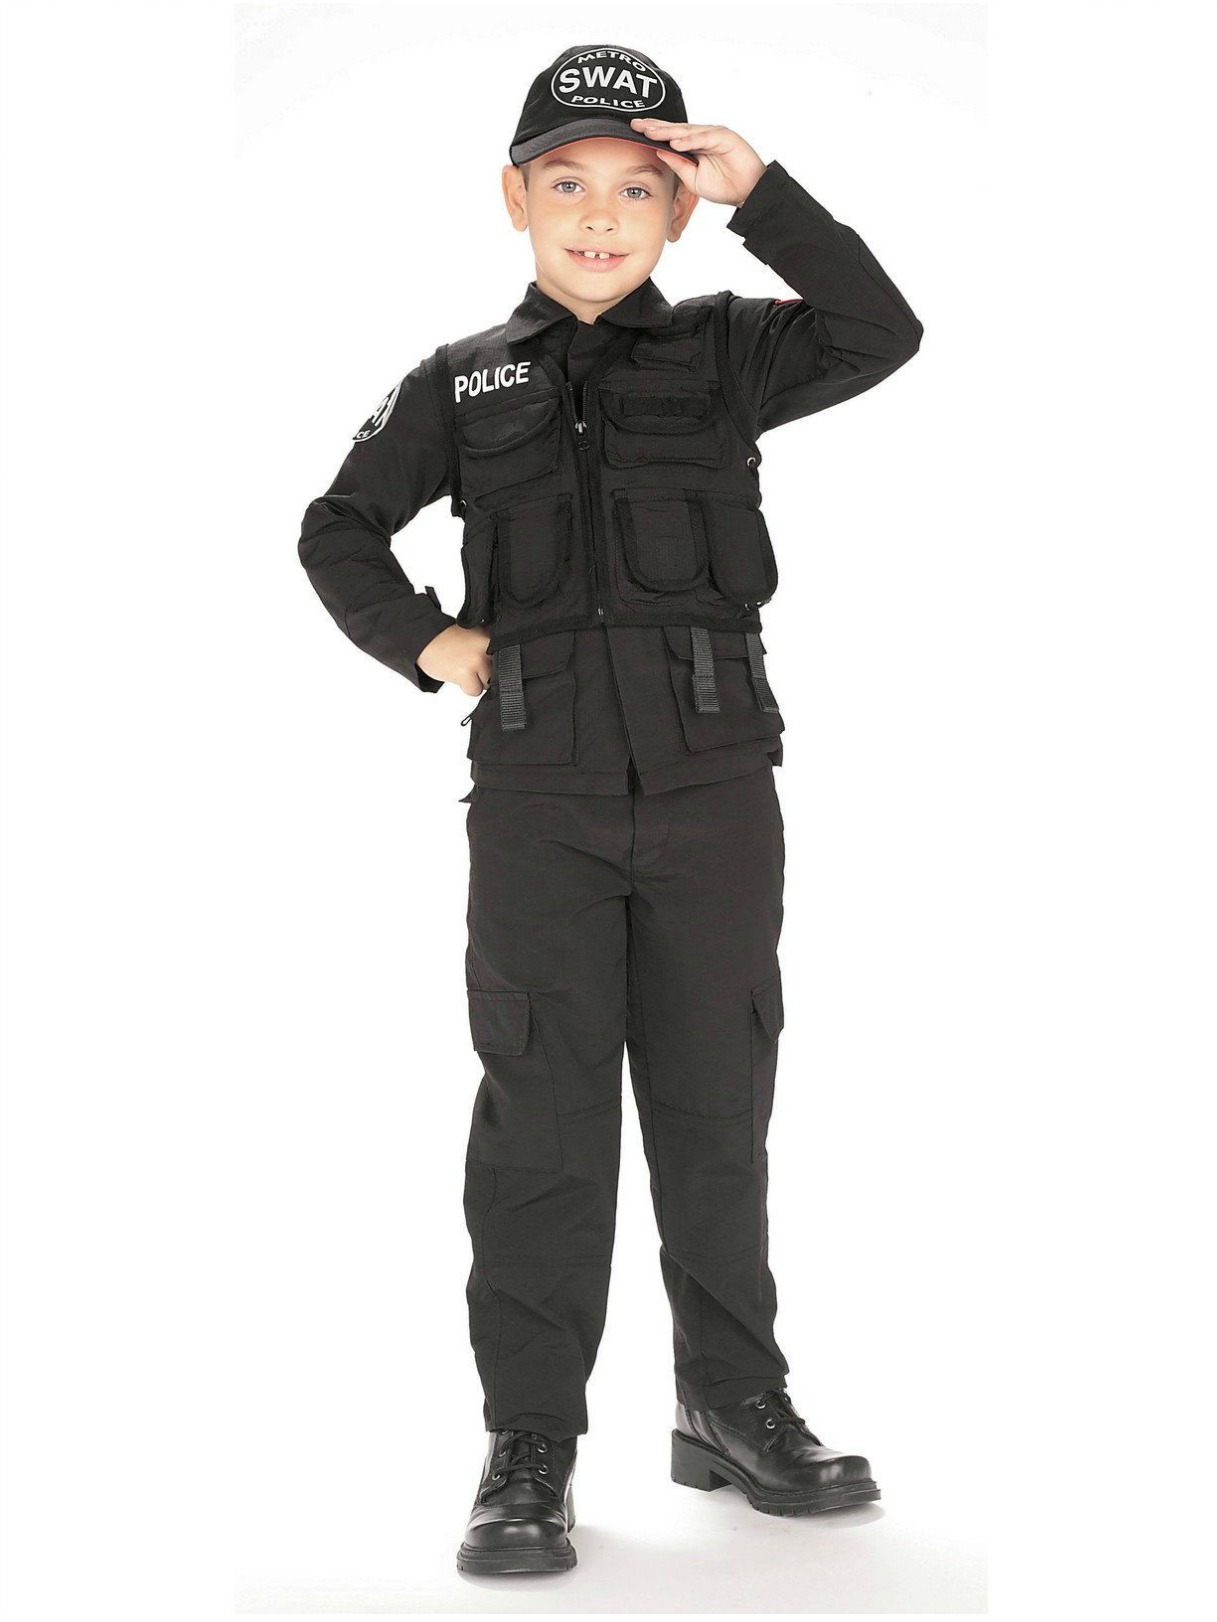 SWAT Police Childrens Costume